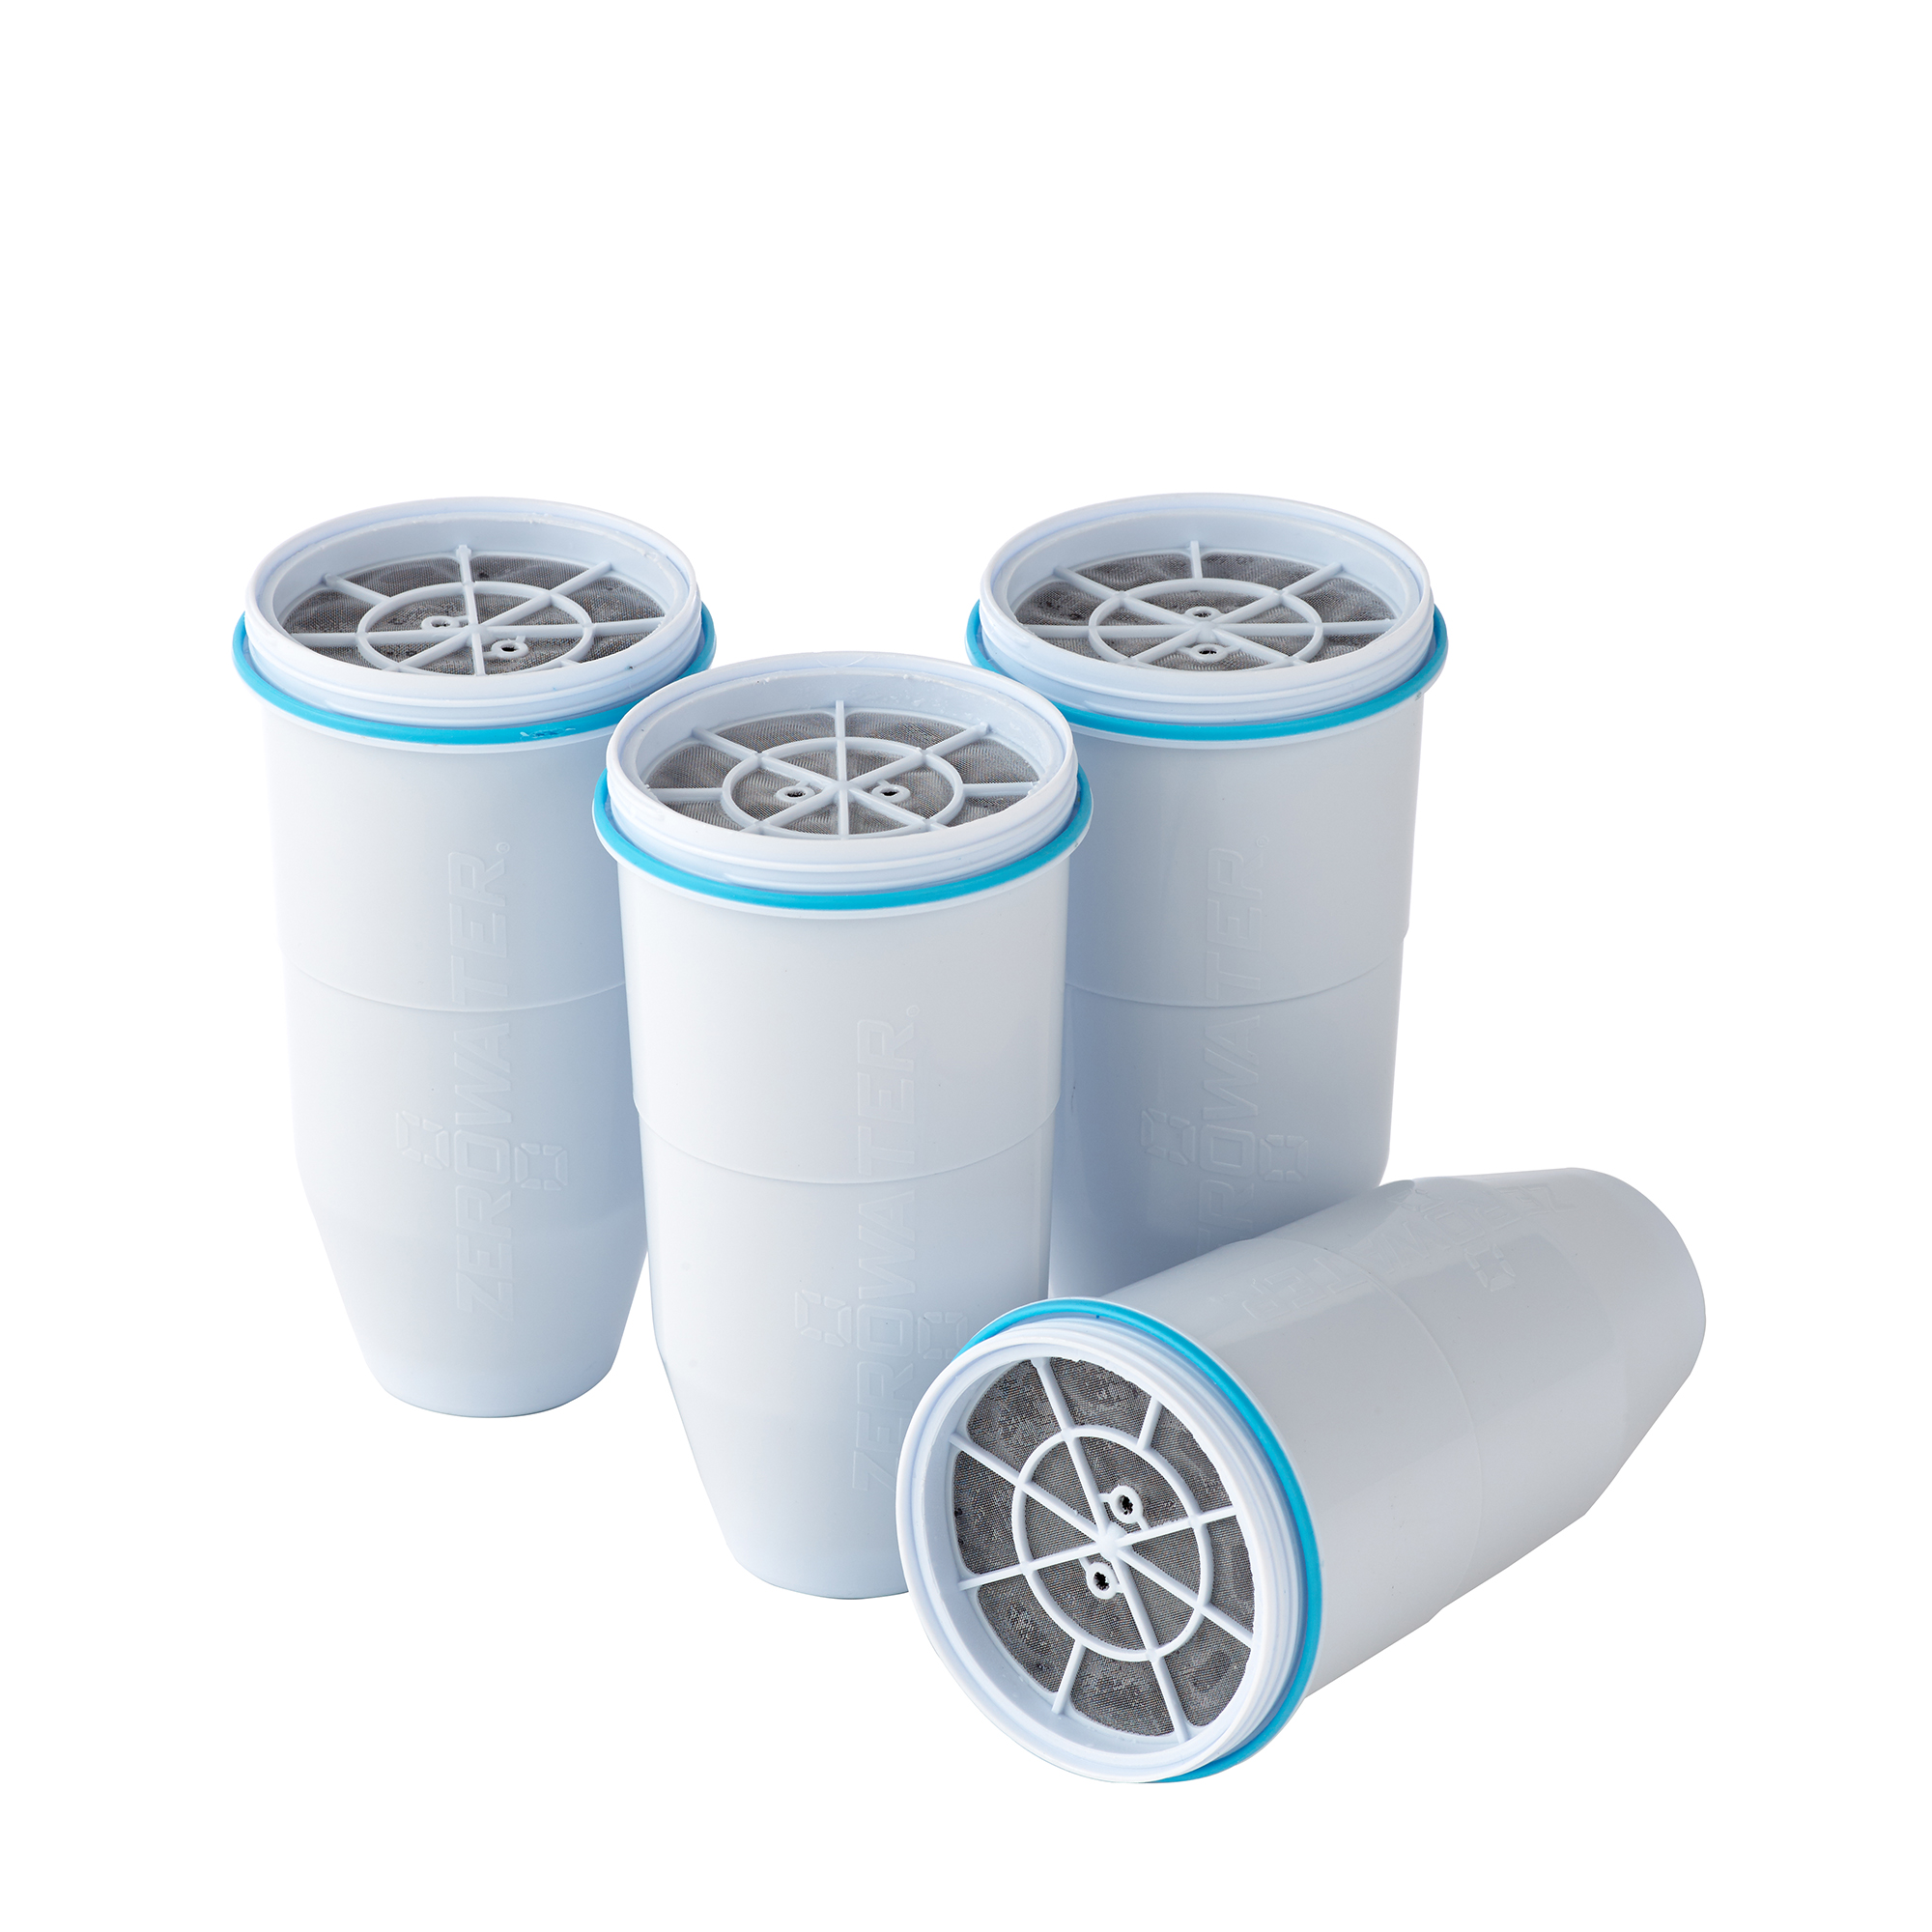 ZeroWater Replacement Filter for Pitchers, 4-Pack (ZR-006)